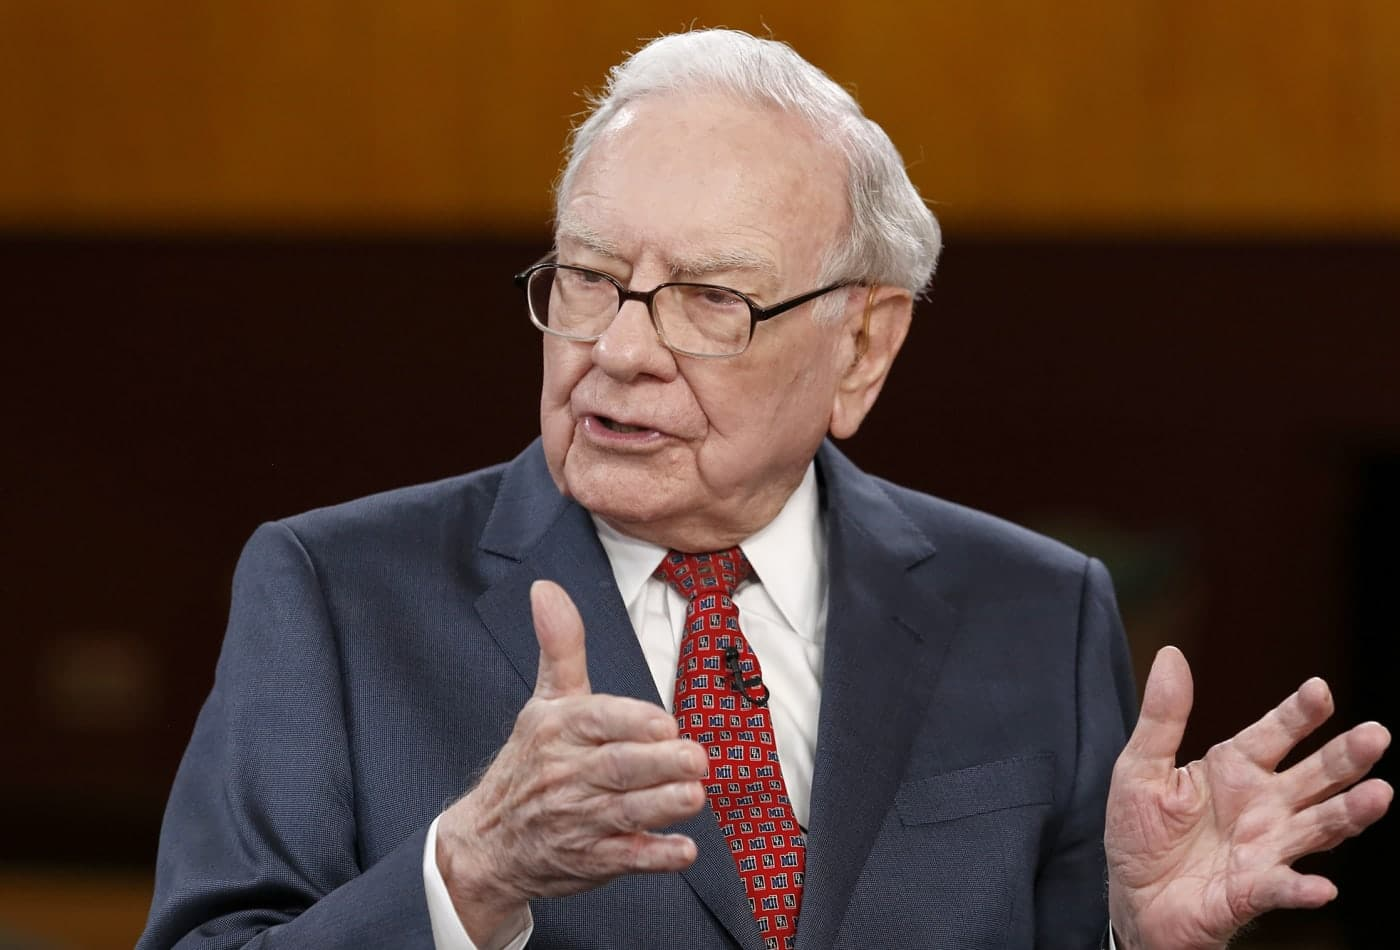 Warren Buffett American Business Magnate, Investor and Philanthropist